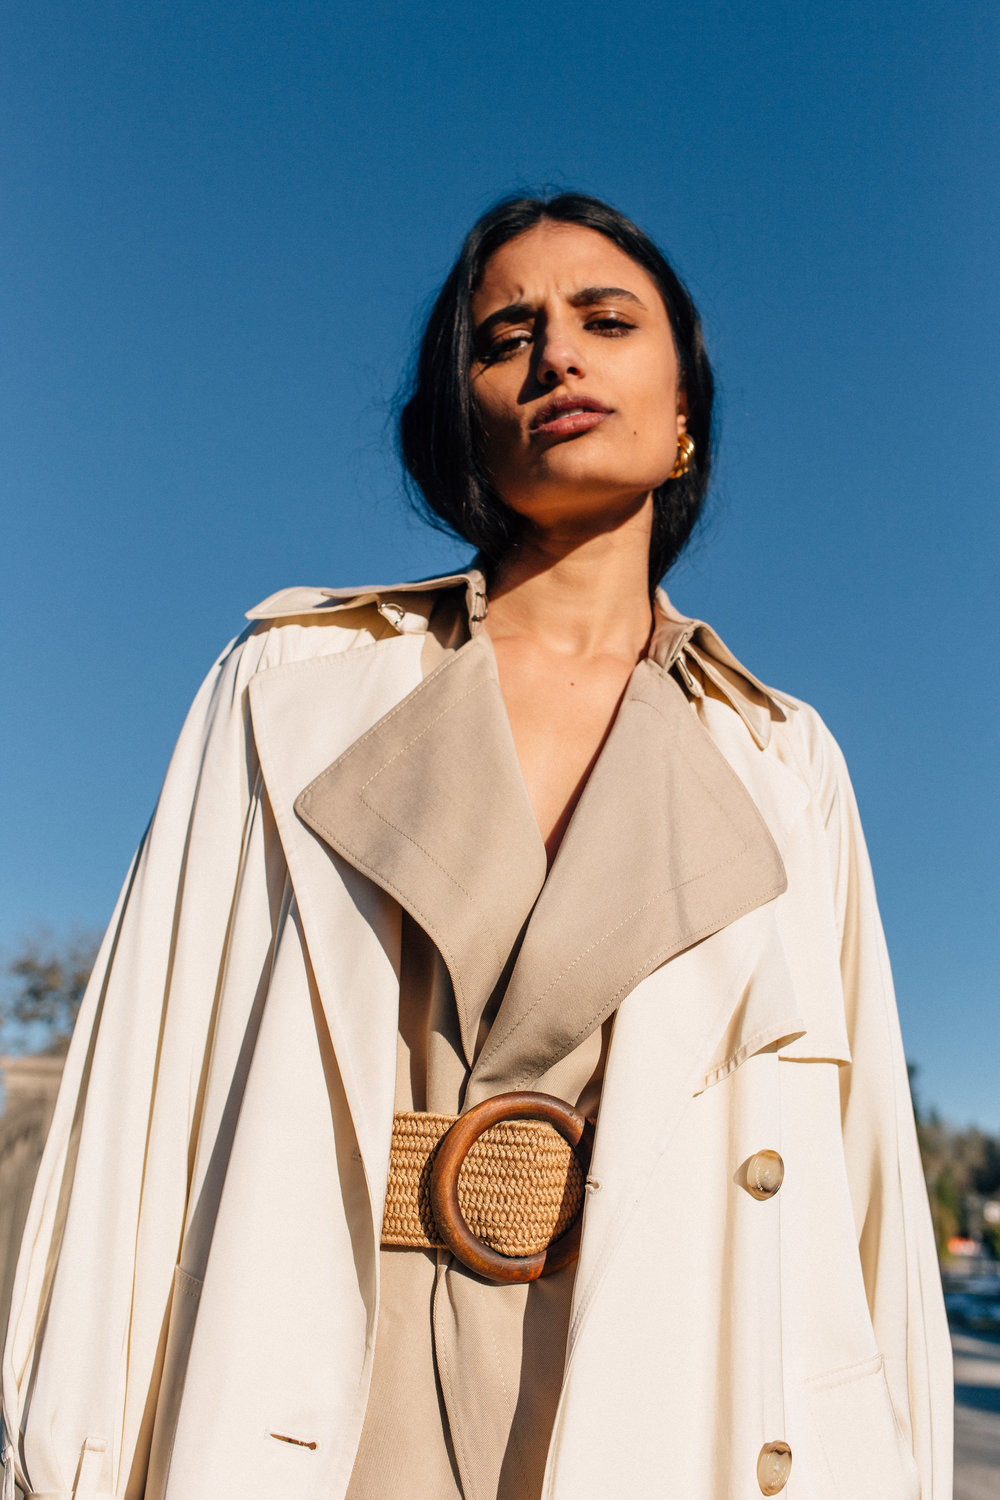 Katie  wearing  Earrings, Céline  Jackets, Aritzia Shoes, Dries Van Noten   Key Models ,  Plutino Models ,  Folio Montreal   Styled by  Jake Ahnert   Vancouver '19